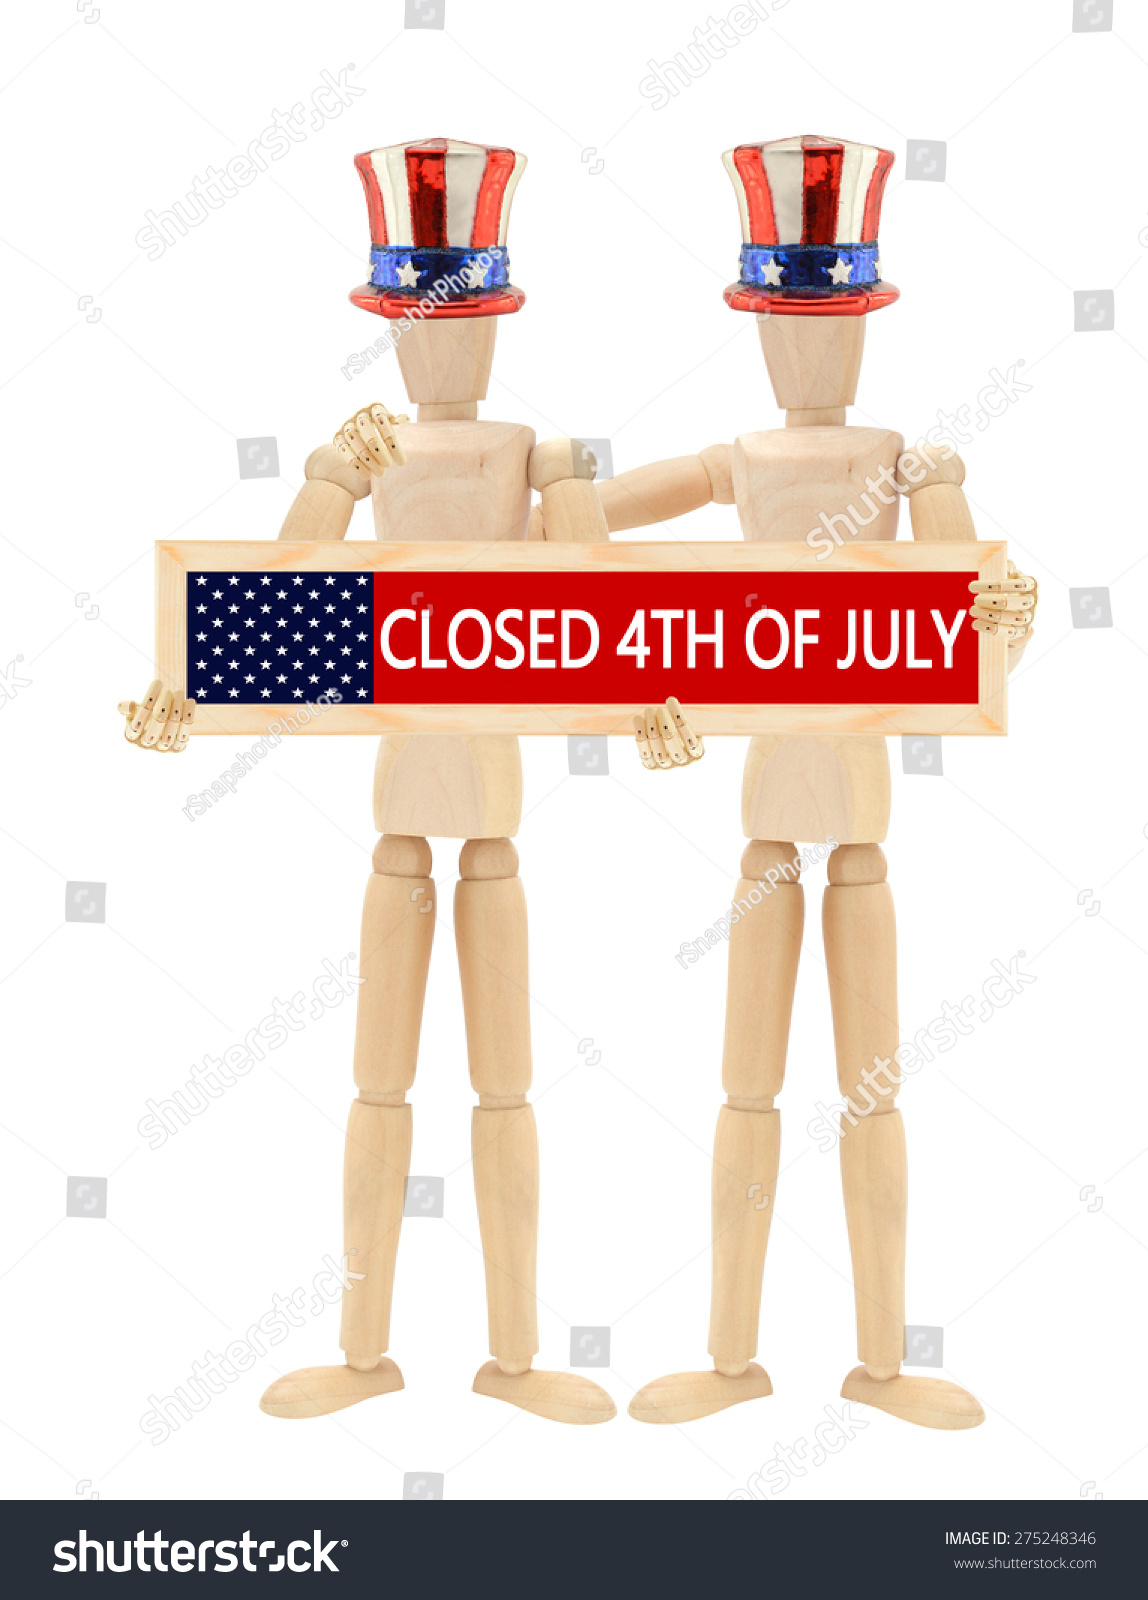 fourth of july closed sign